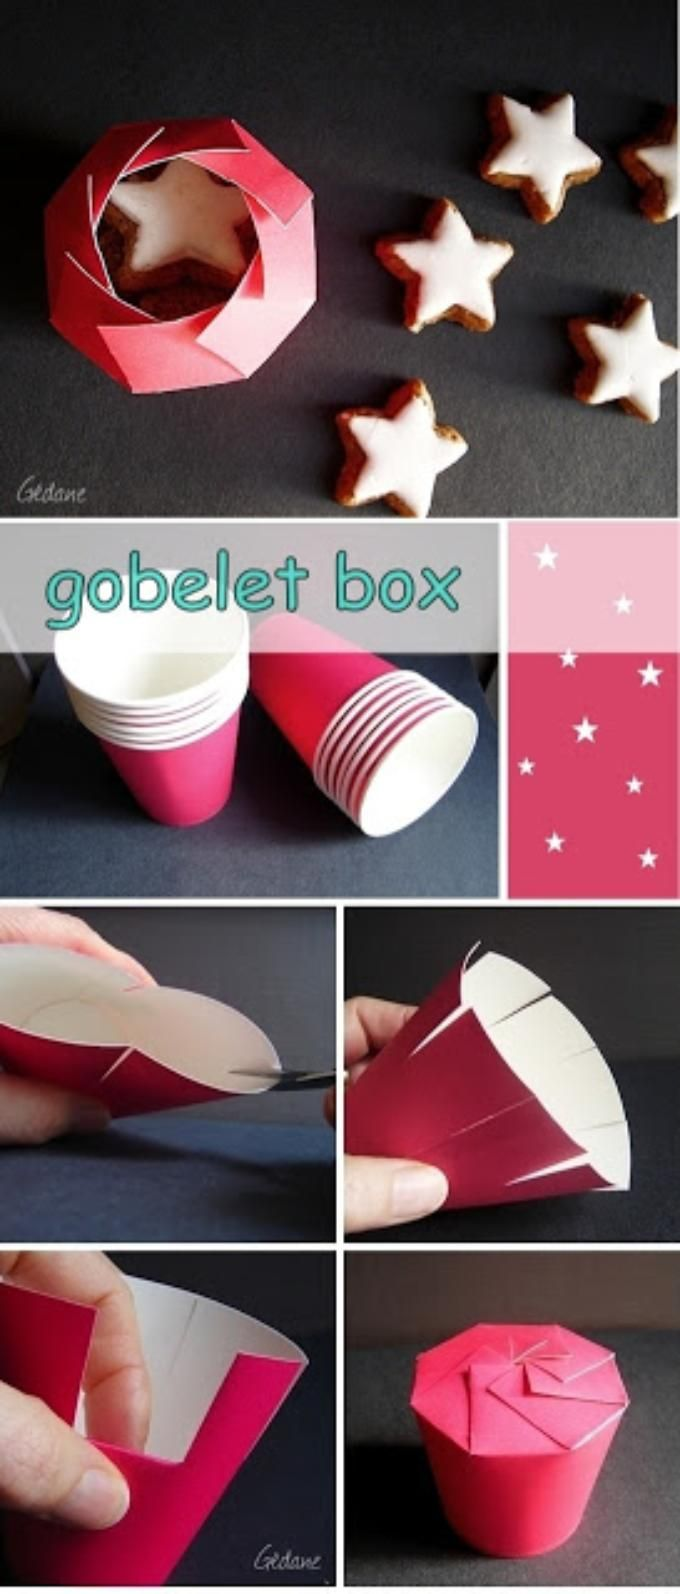 article-diy-tuto-box-gobelet-en-carton-113343795